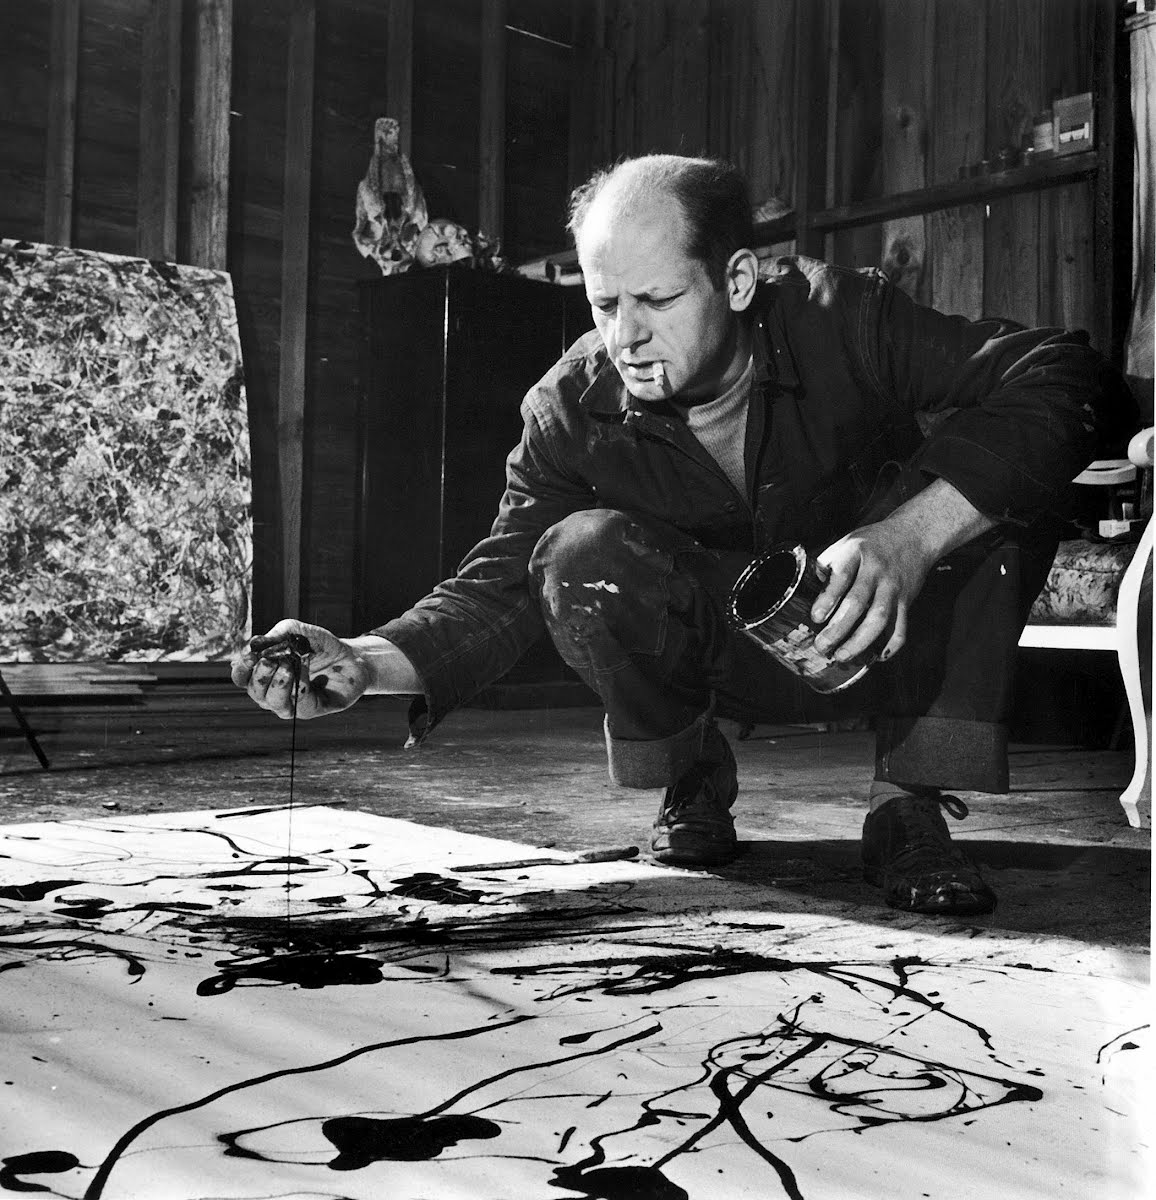 10 Famous Artists' Studios You Can See on Street View - Google Arts & Culture